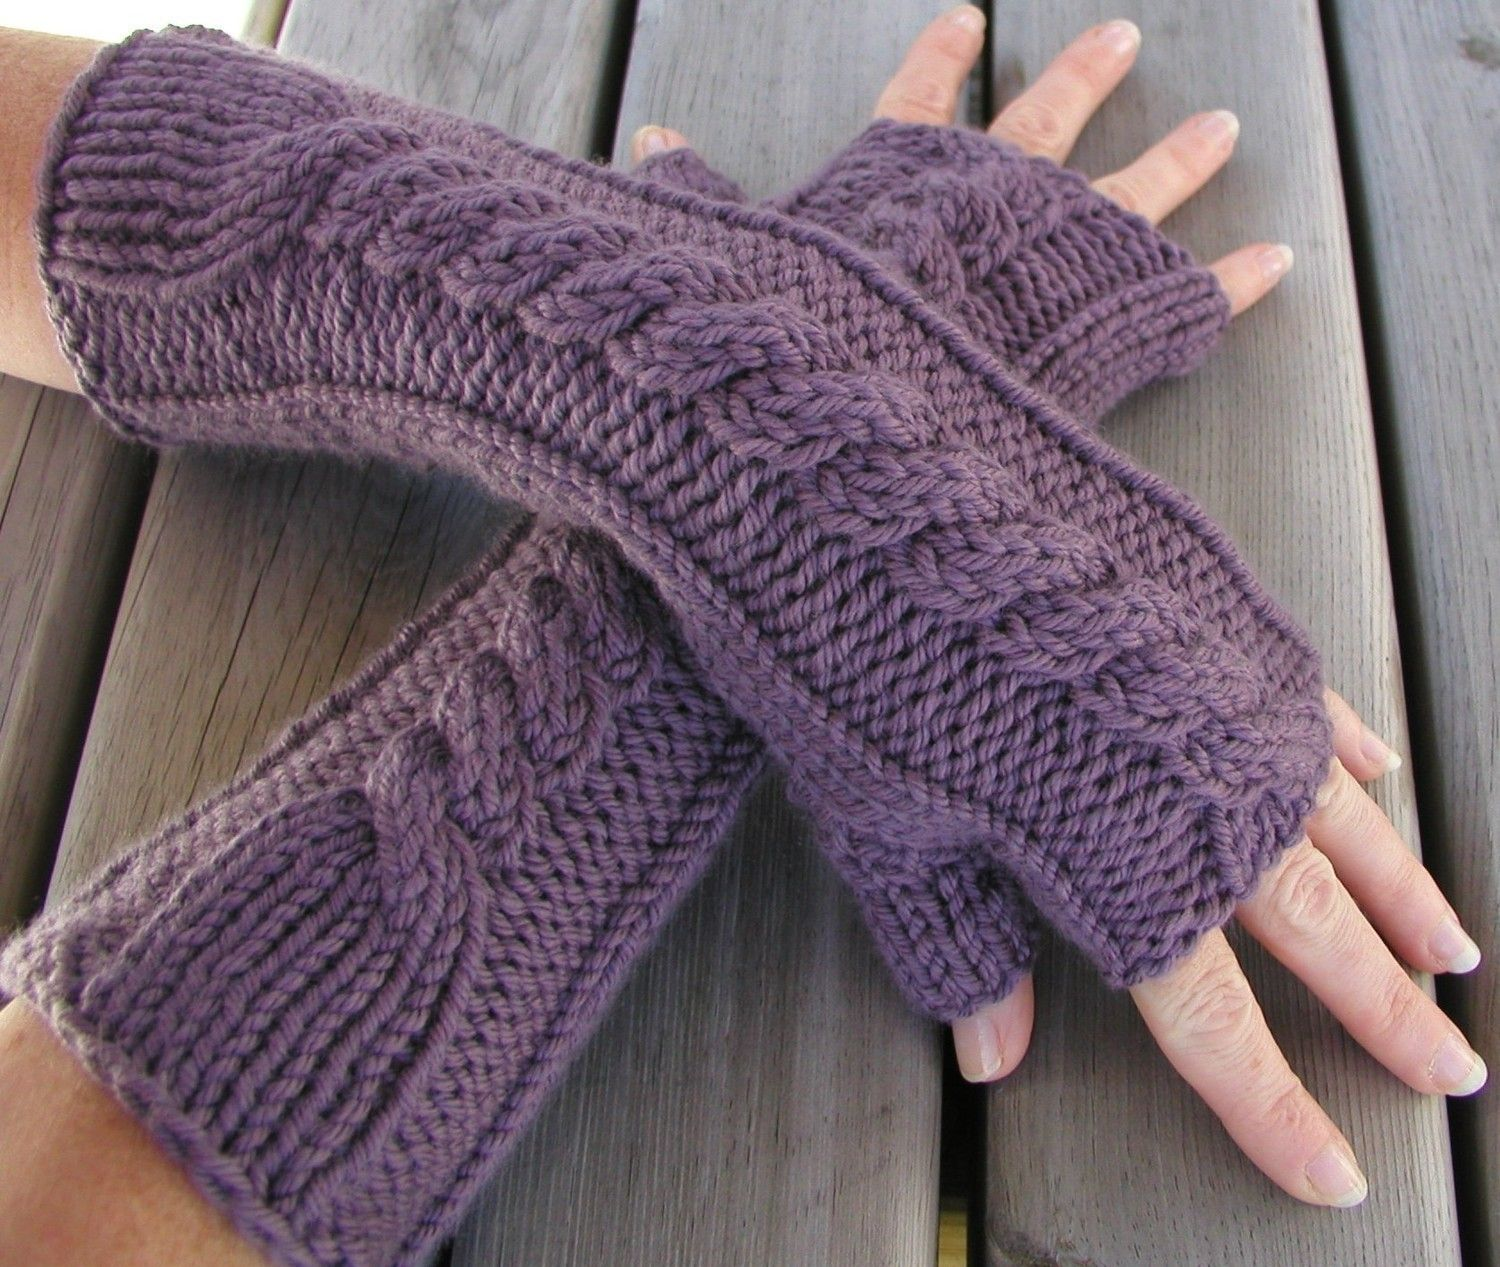 Free Knitting Pattern - Kumara Arm Warmers from the Gloves and ...